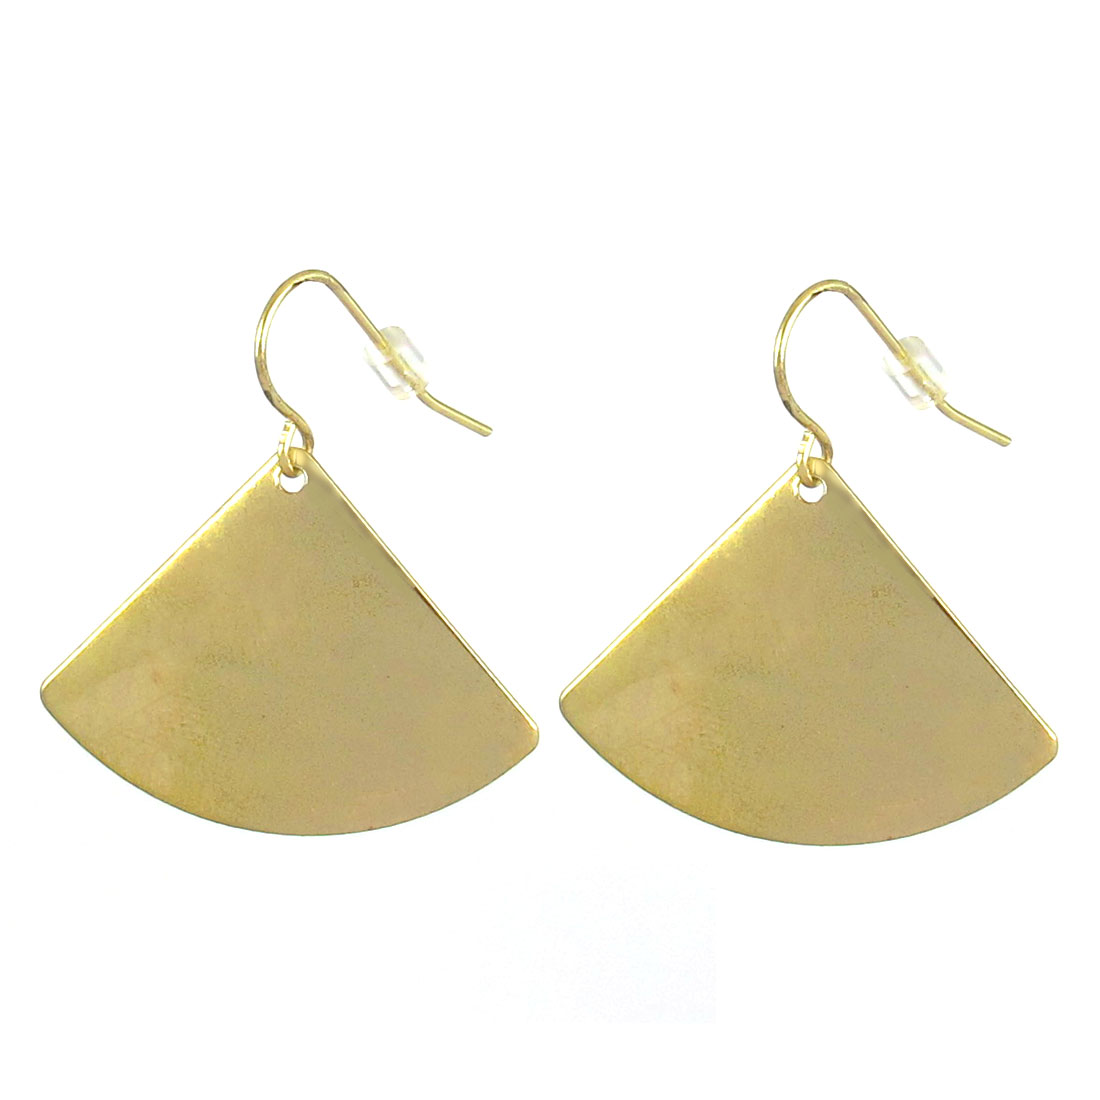 "Women Metal Solid Sectorial Shaped Dangling Pendant Hook Earrings Earbobs Gold Tone 1.2"" Length Pair"